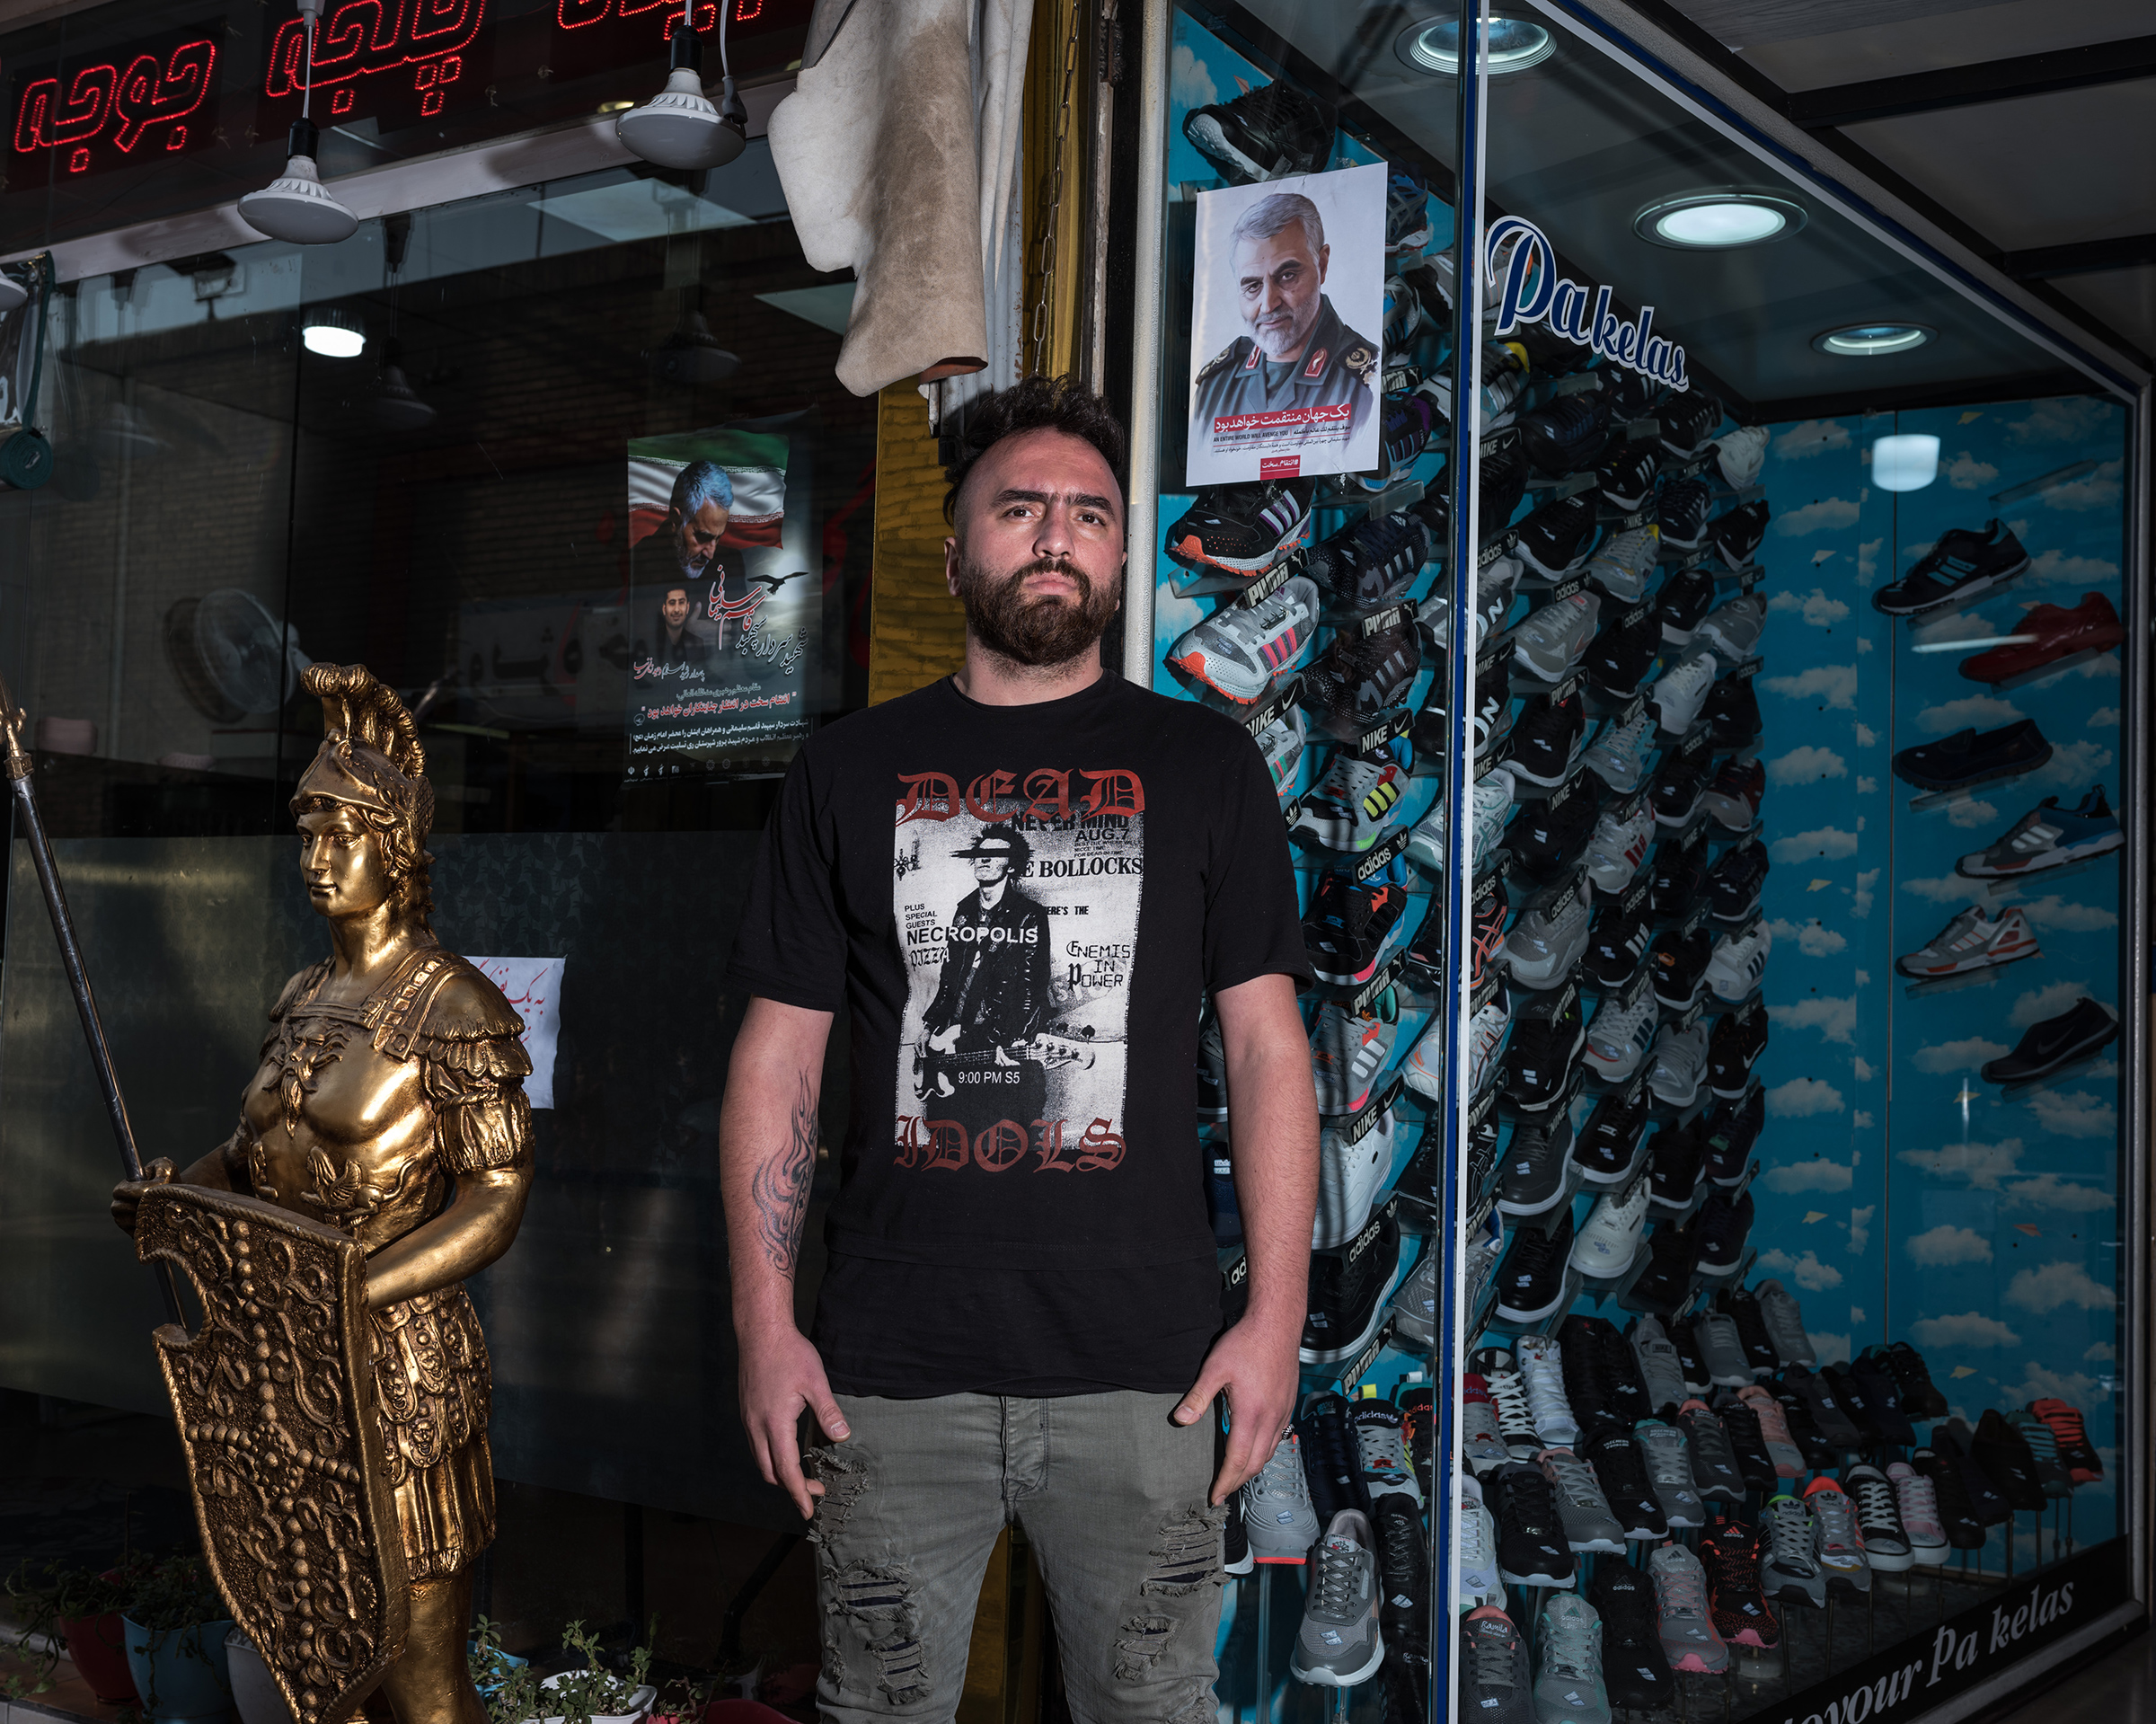 Ali, 29, sells shoes near the shrine to Shah Abdol Azim in Tehran. He hung a poster of Qasem Soleimani  out of respect for what he did for Iran.   'The City Had Transformed.' Scenes From Tehran's Mass Mourning of Qasem Soleimani,  Jan. 10.